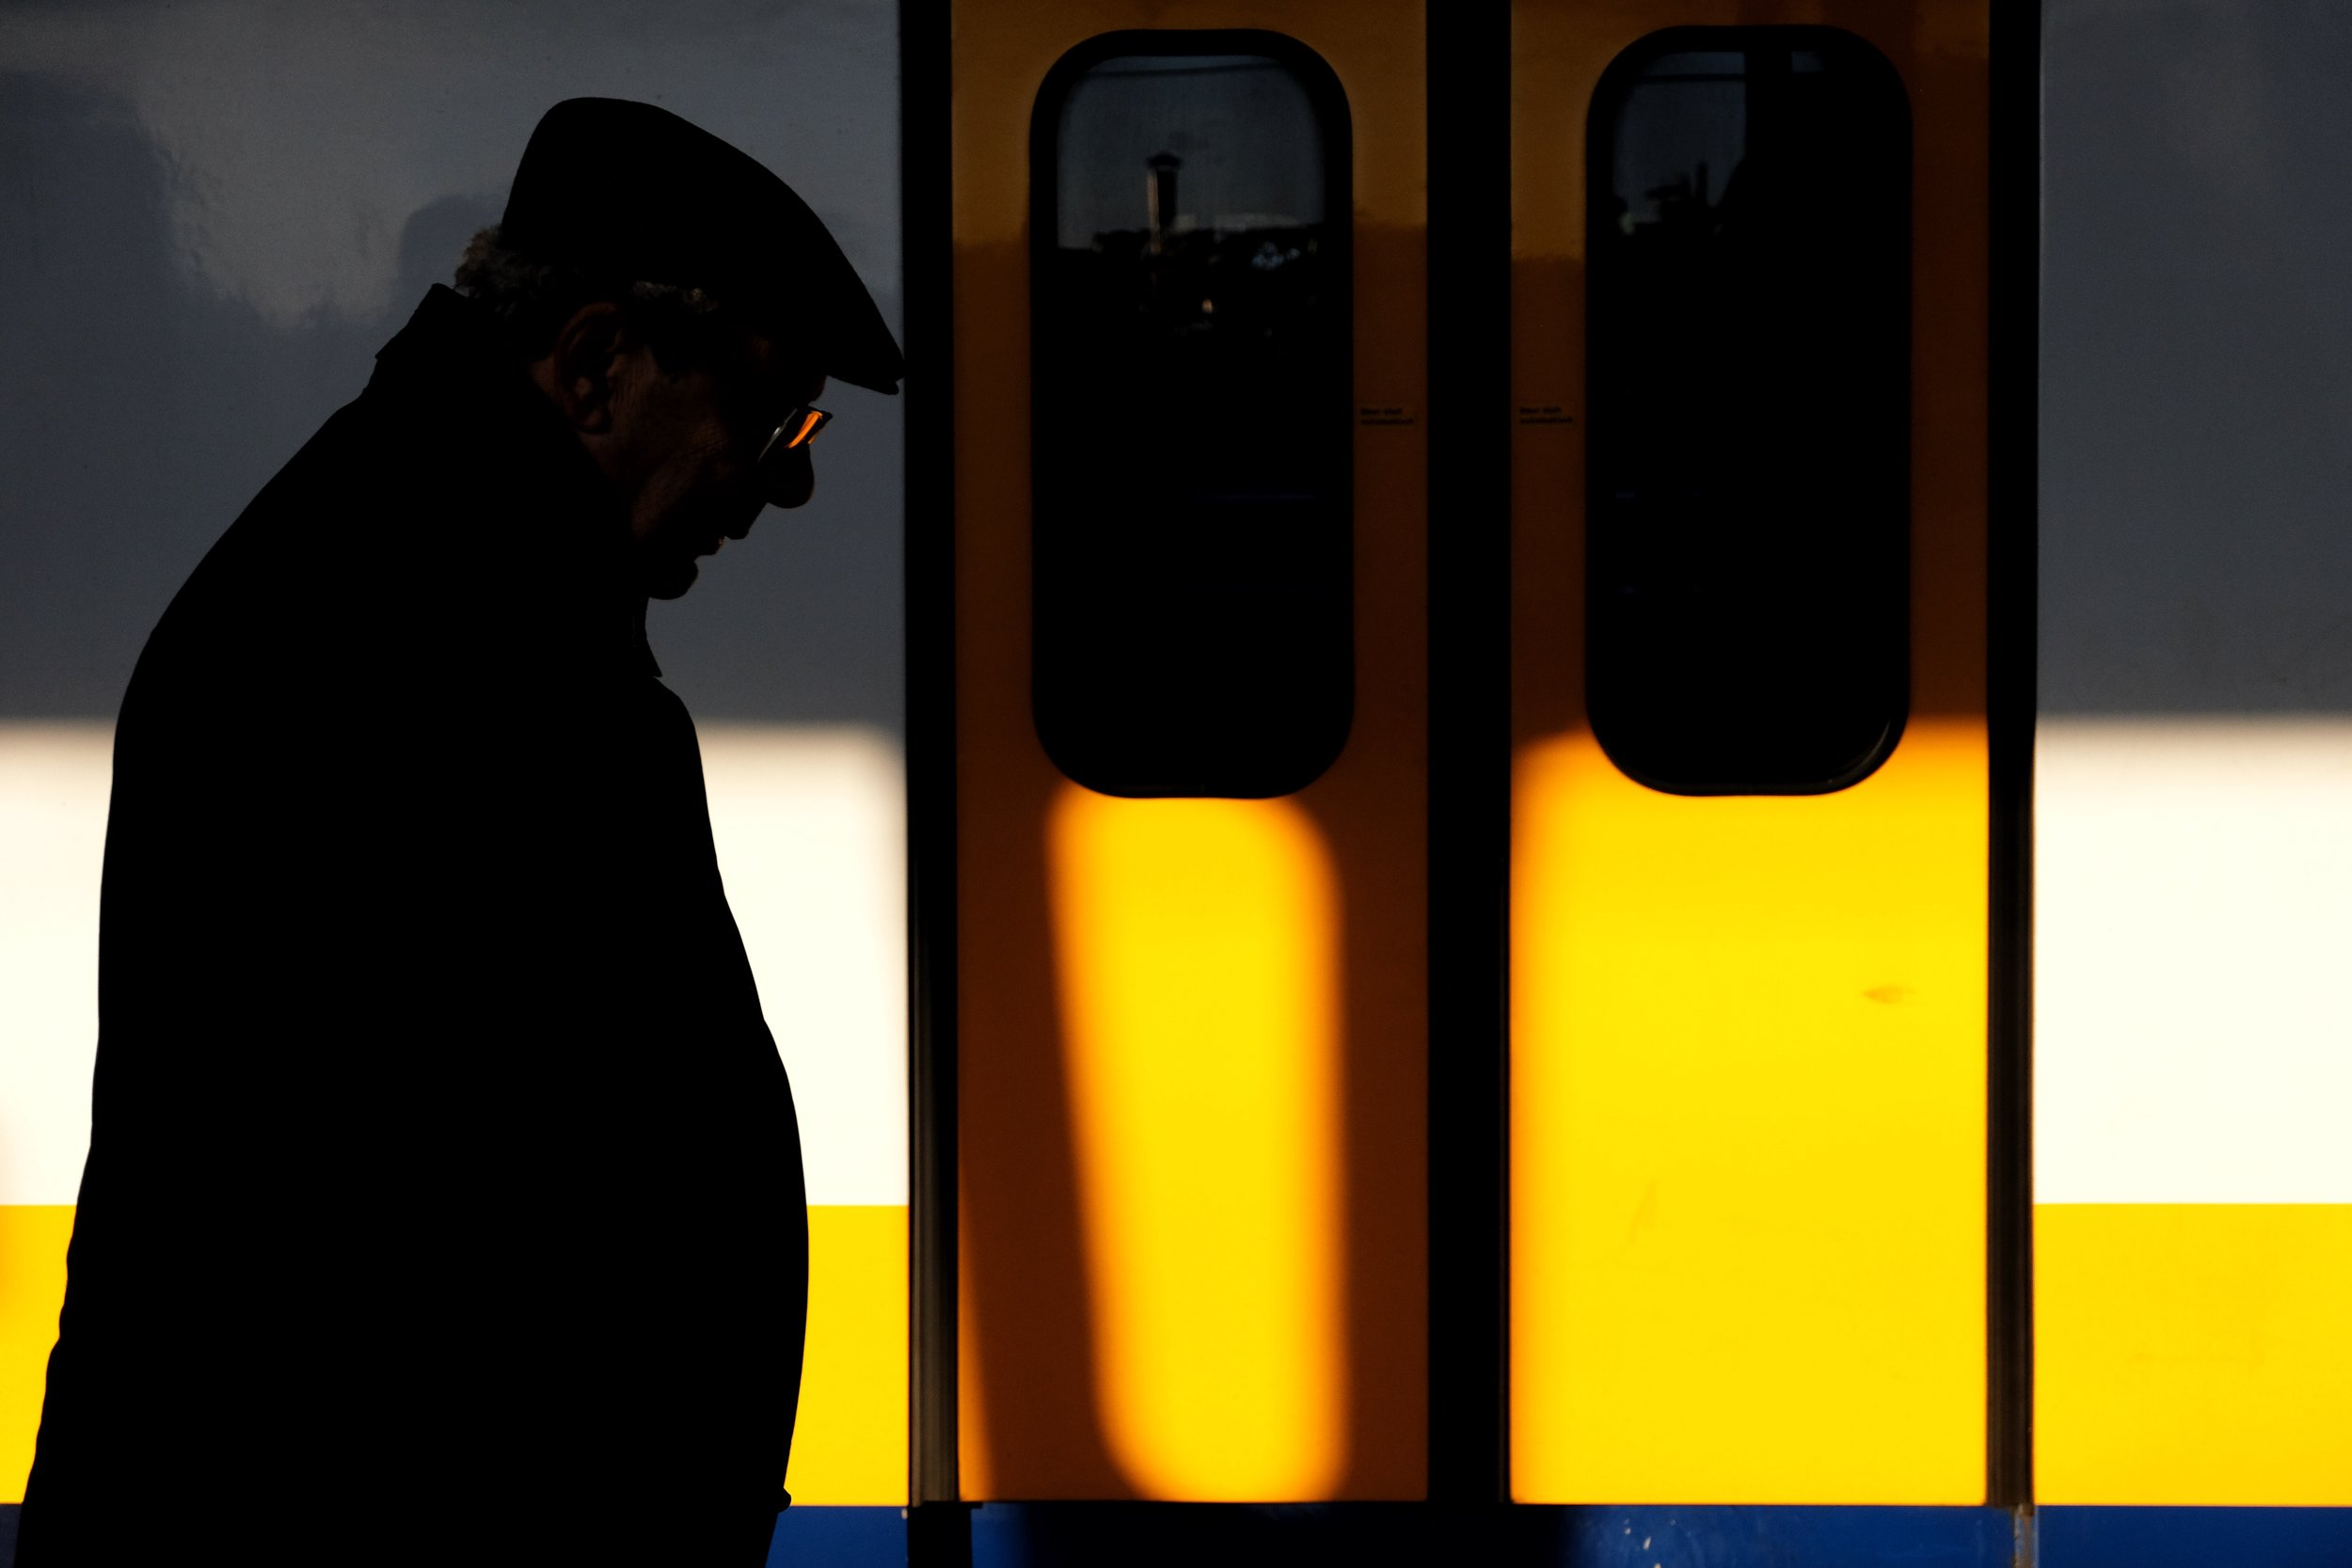 Copy of Lot 563 Golden Hour at Haarlem Station - Photograph